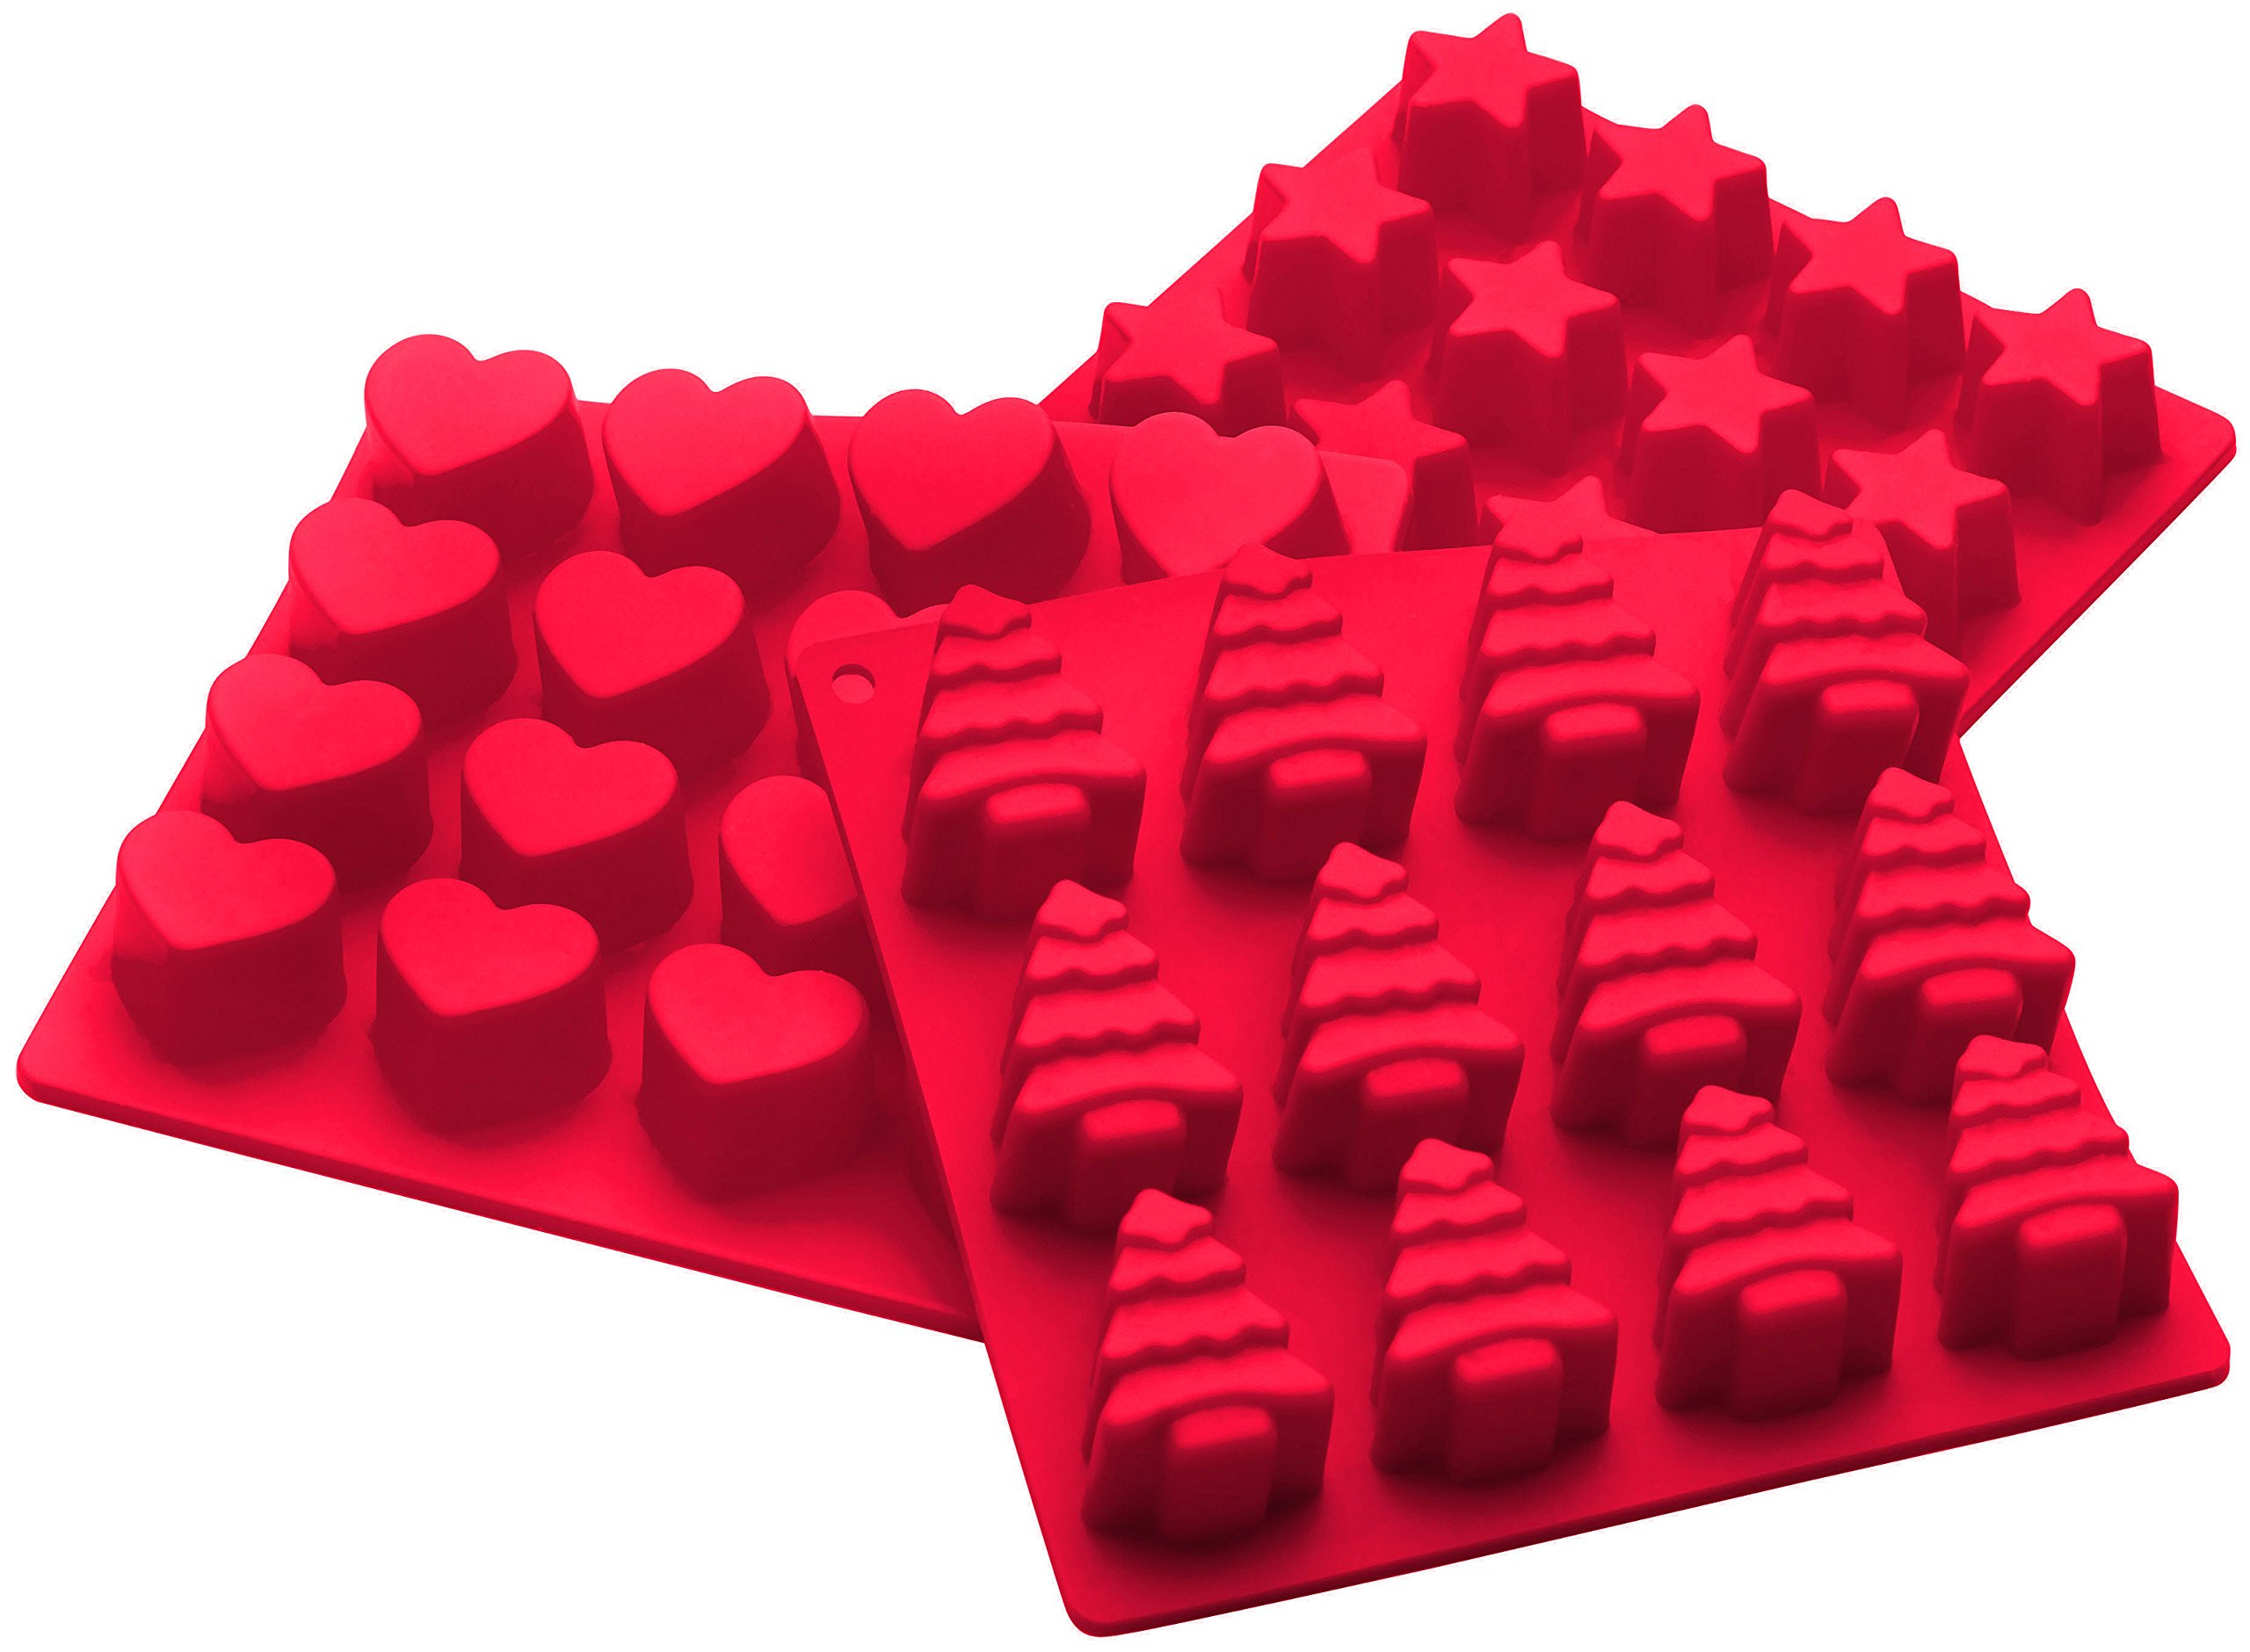 Christmas Chocolate Candy Molds  StarPack Premium Silicone Holiday Candy Molds 3 Pack